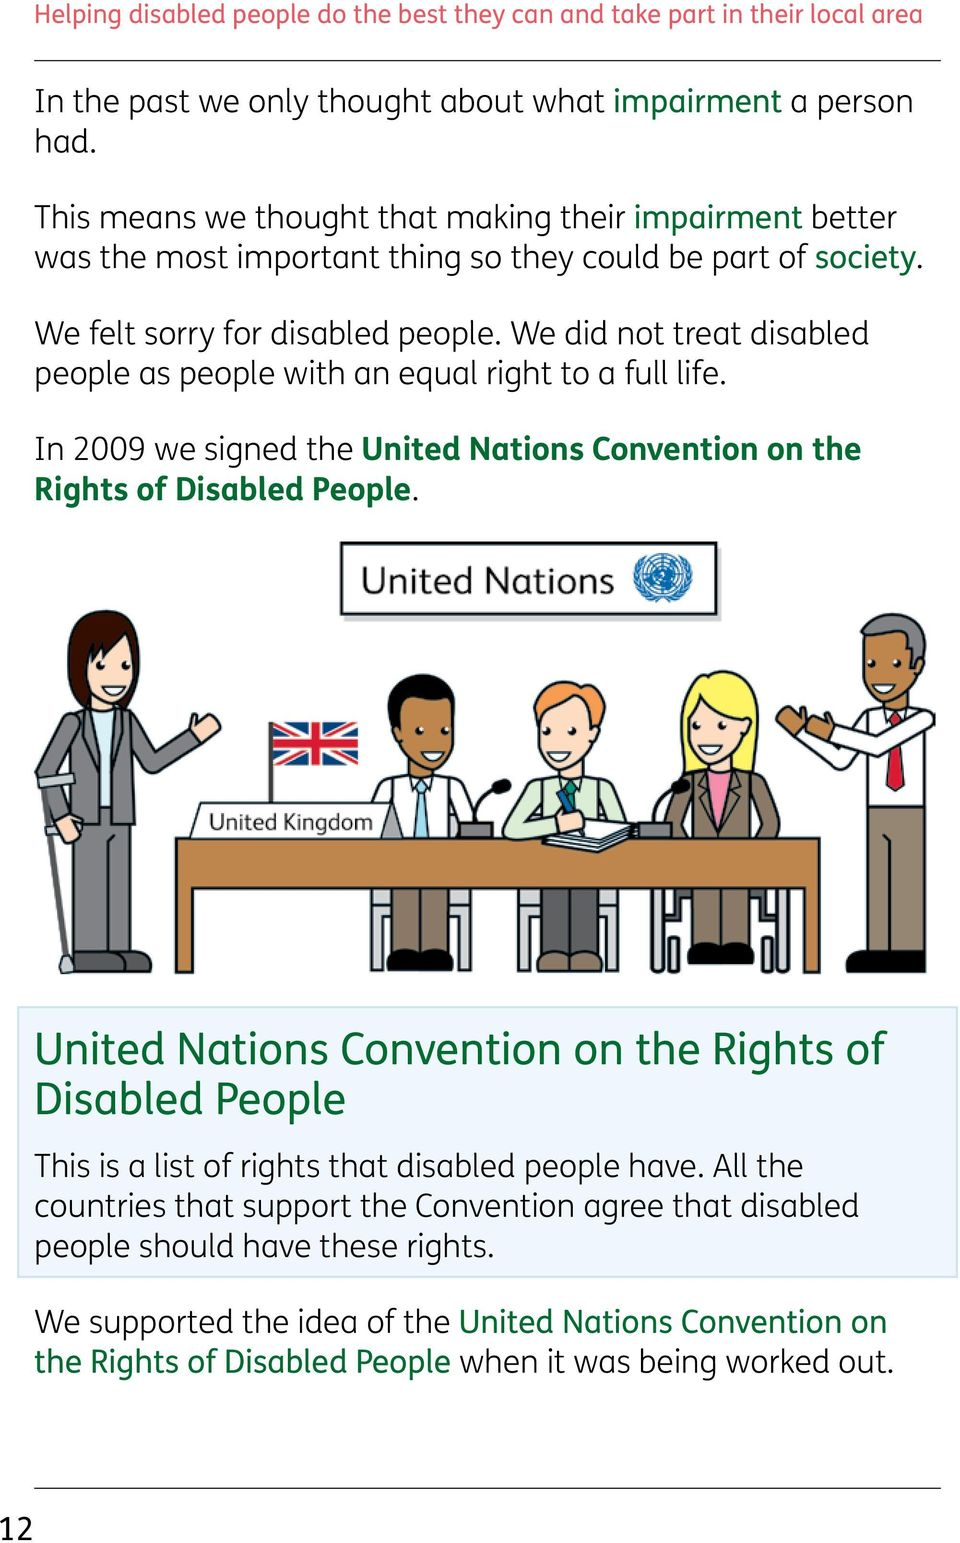 We did not treat disabled people as people with an equal right to a full life. In 2009 we signed the United Nations Convention on the Rights of Disabled People.